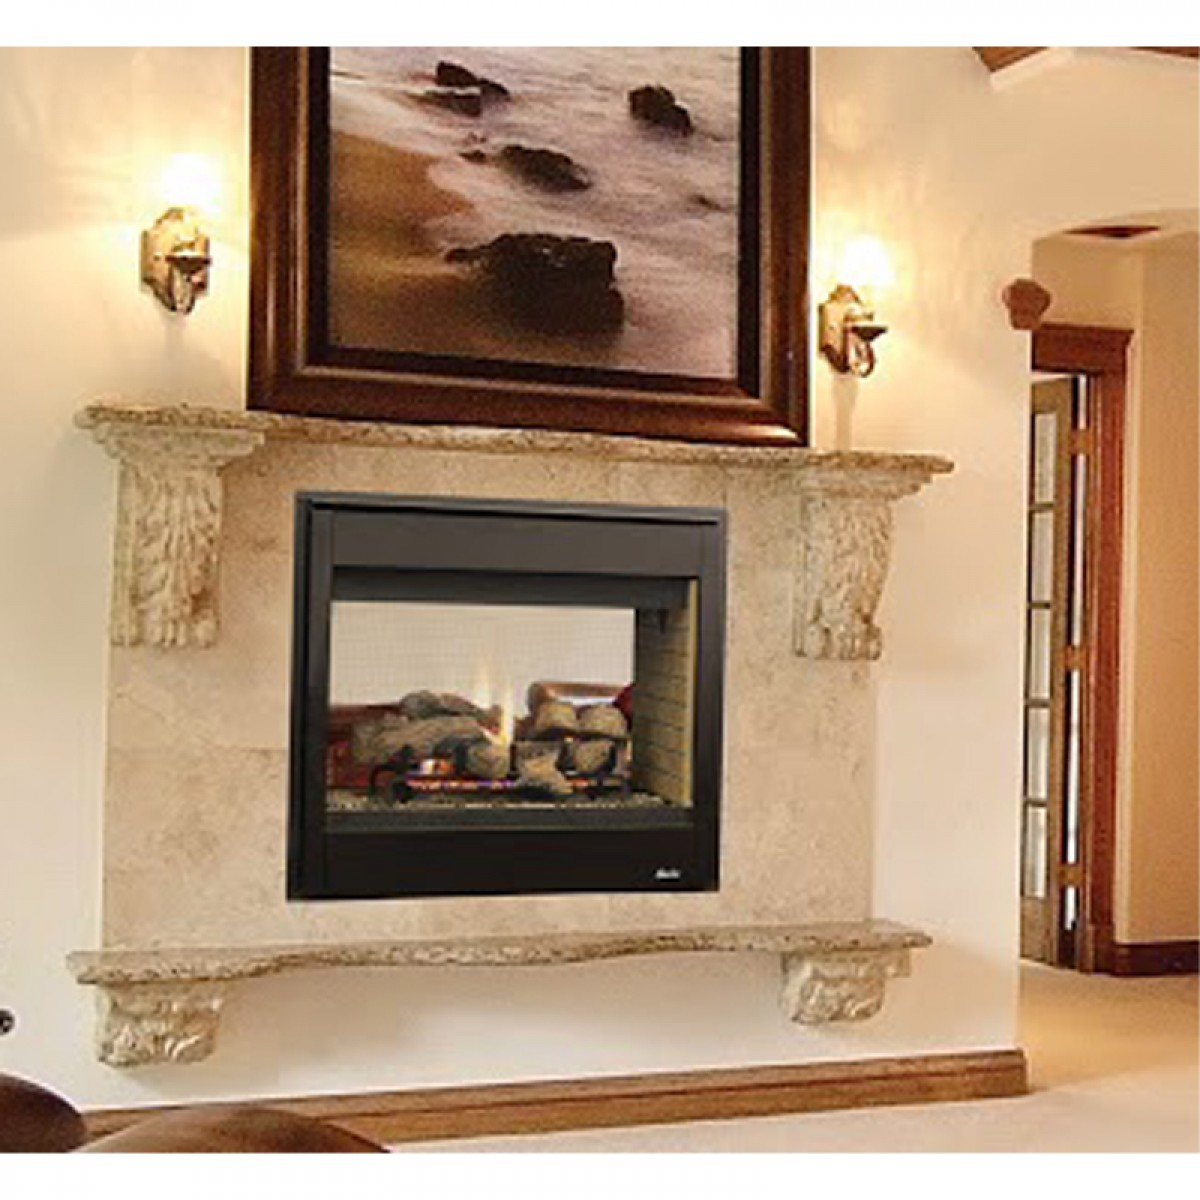 superior drt3500 multi view direct vent gas fireplace